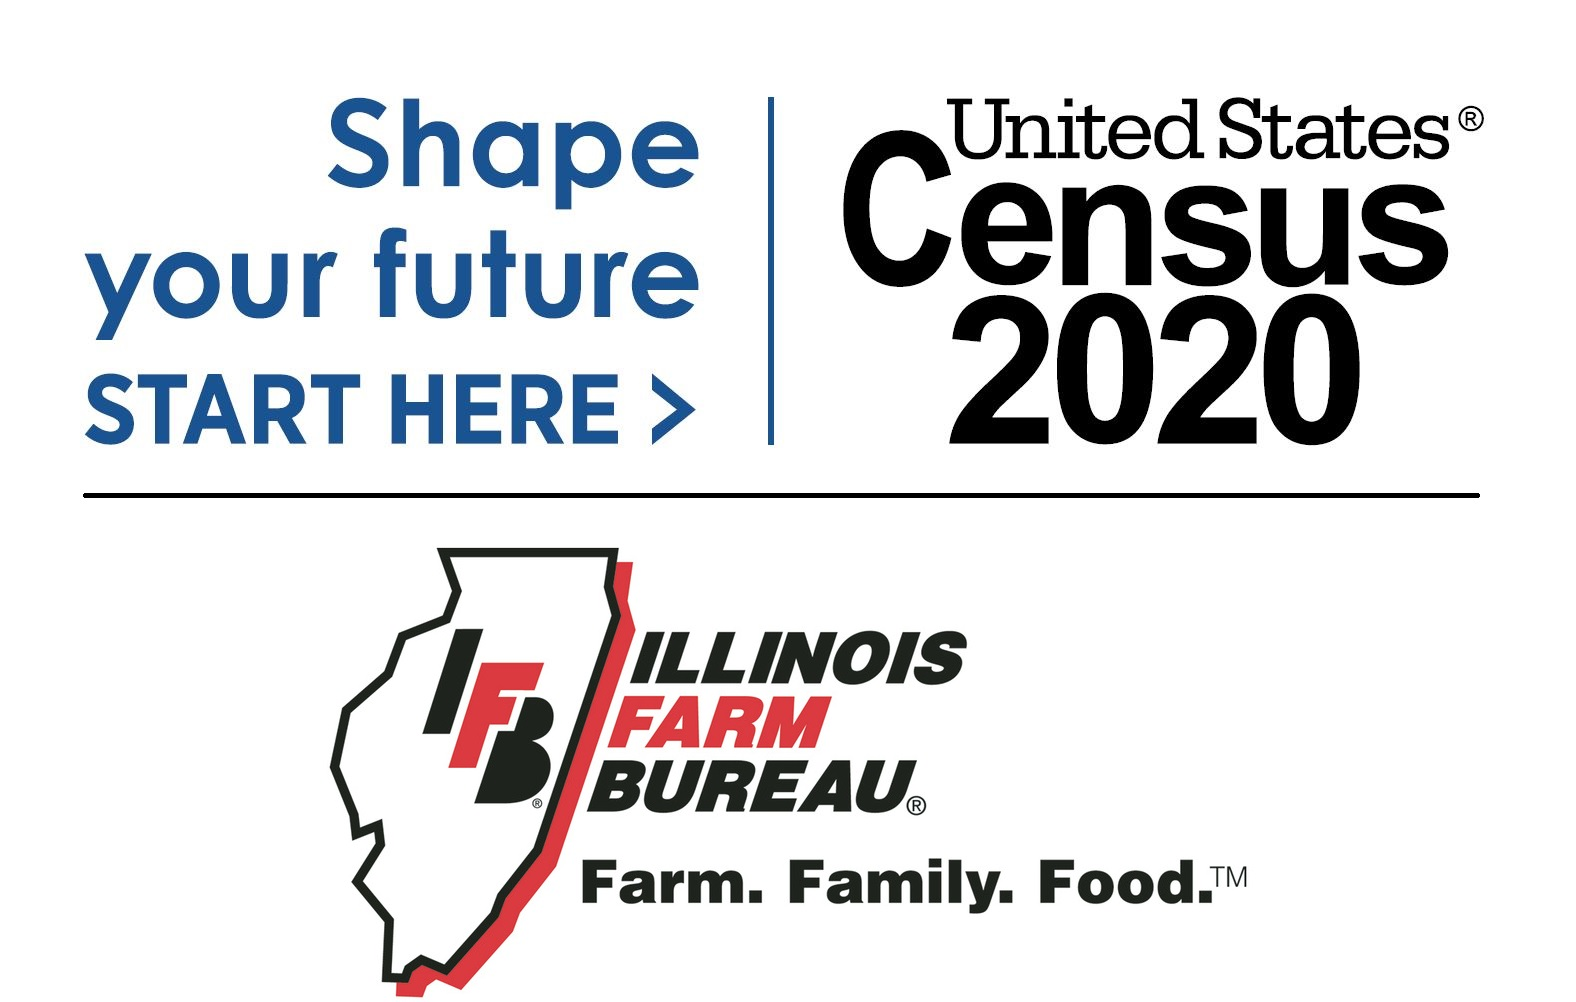 The 2020 Census is here